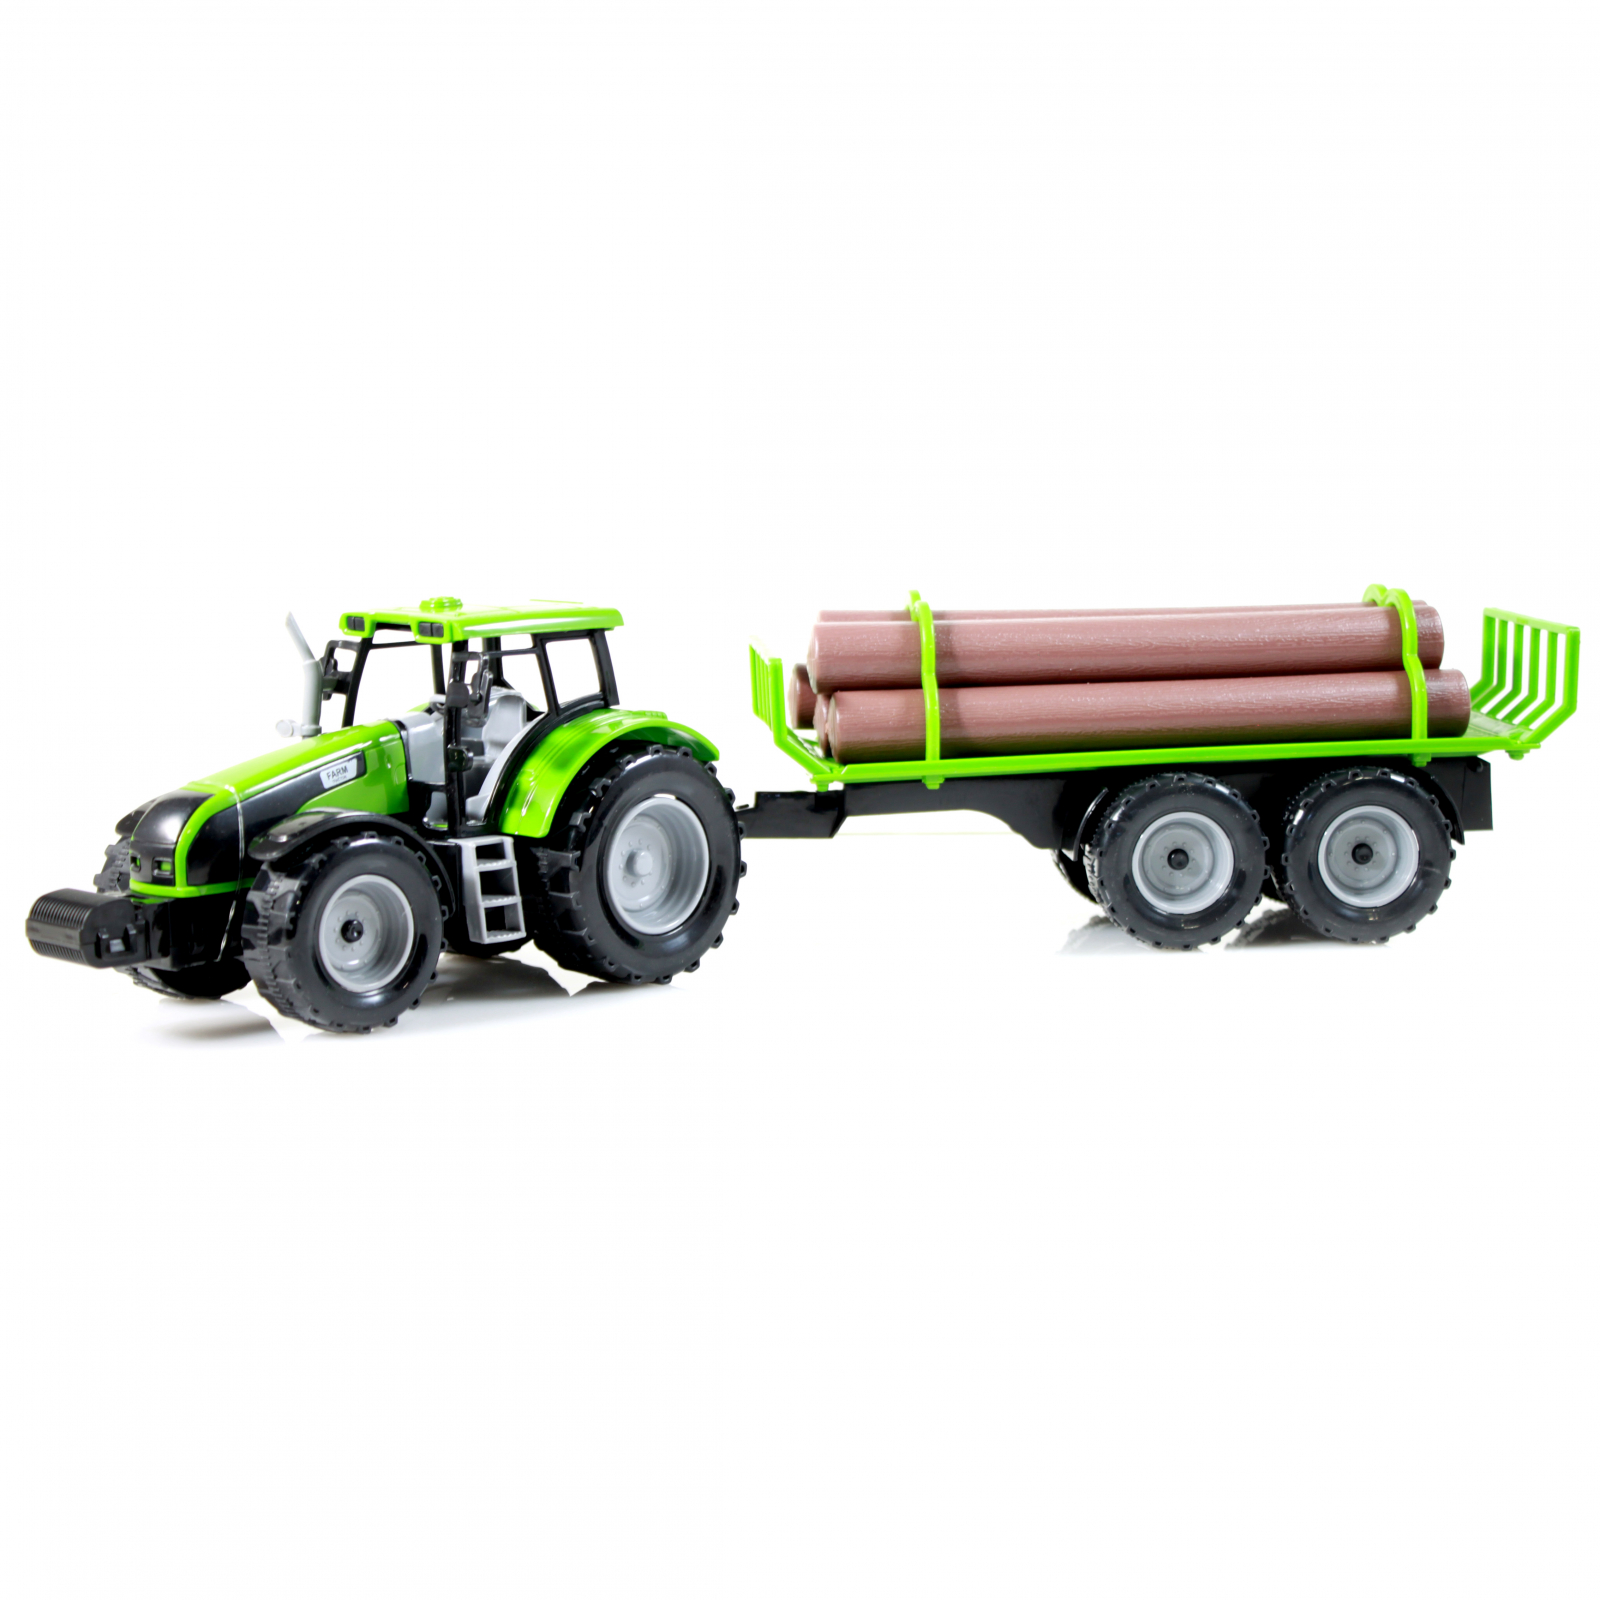 TychoTyke Kids Friction Powered Farm Tractor Toy Logging